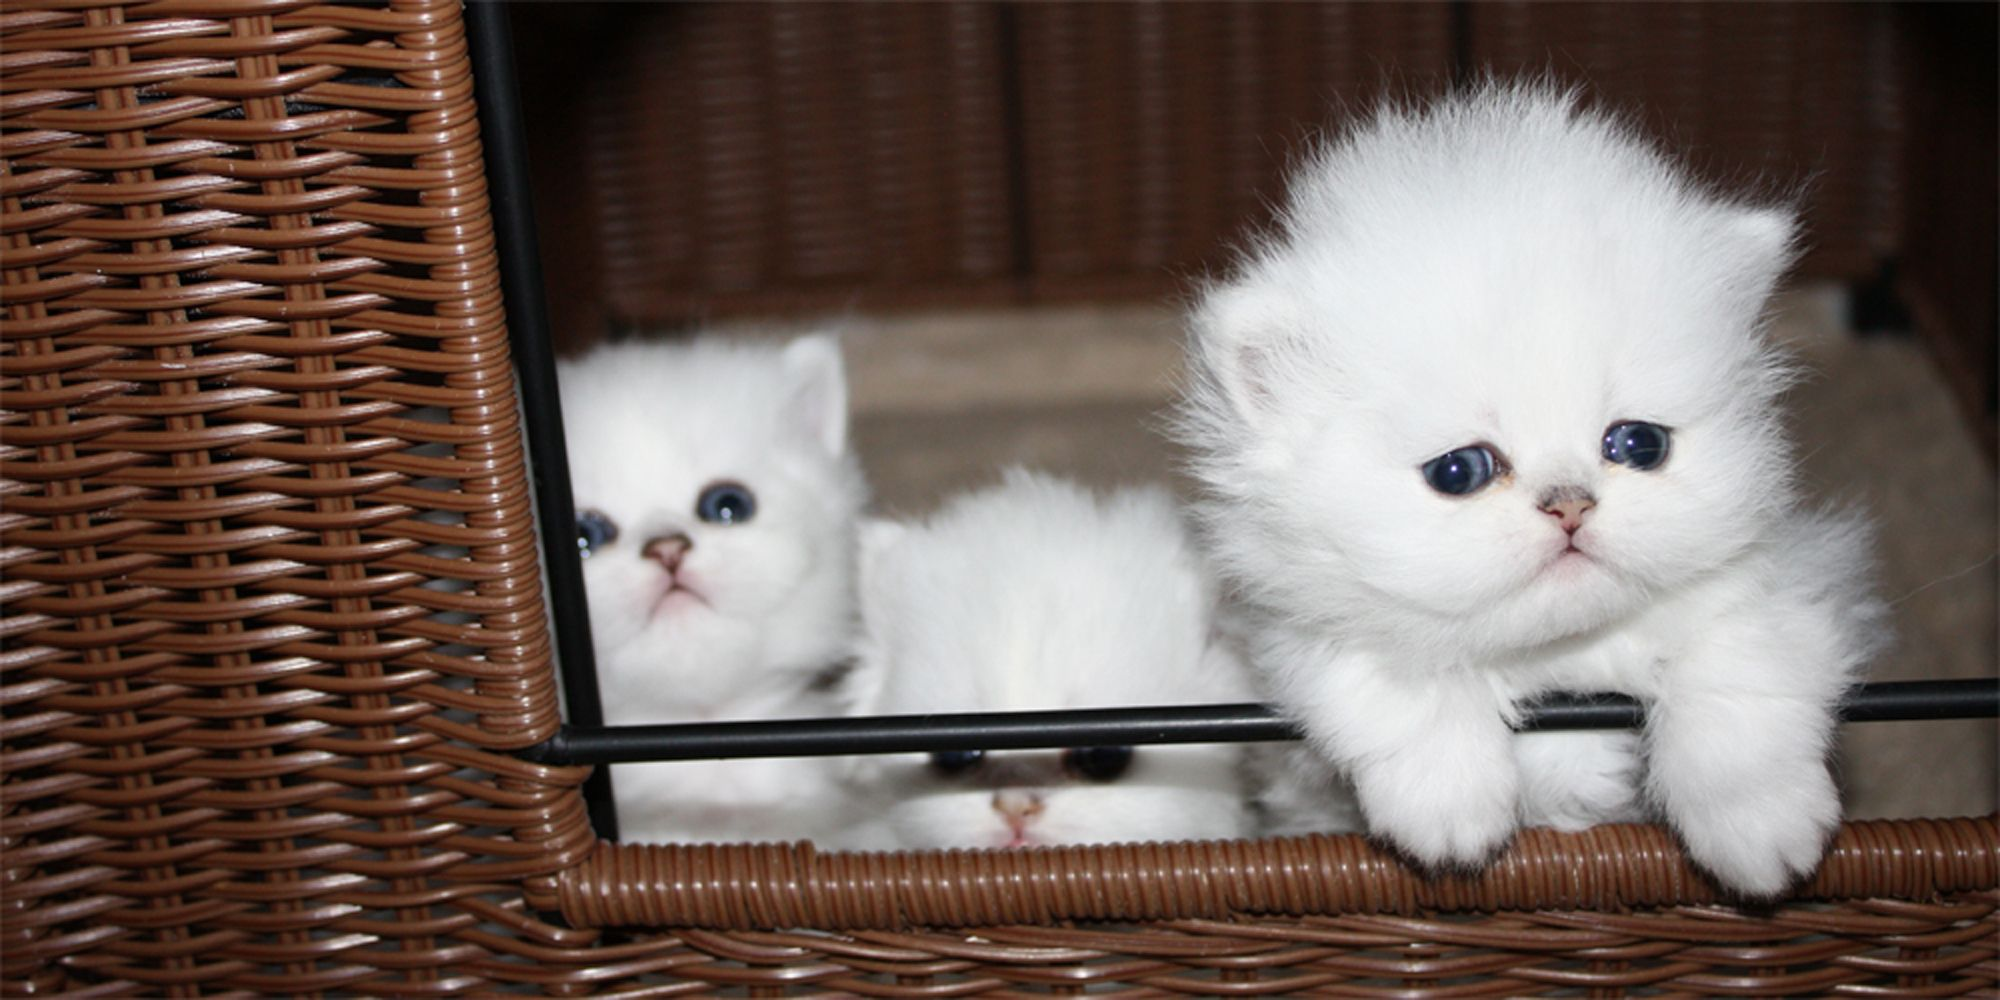 Teacup Persian Kittens For Sale In Central Florida Teacup Persian Kittens Persian Kittens For Sale Persian Kittens